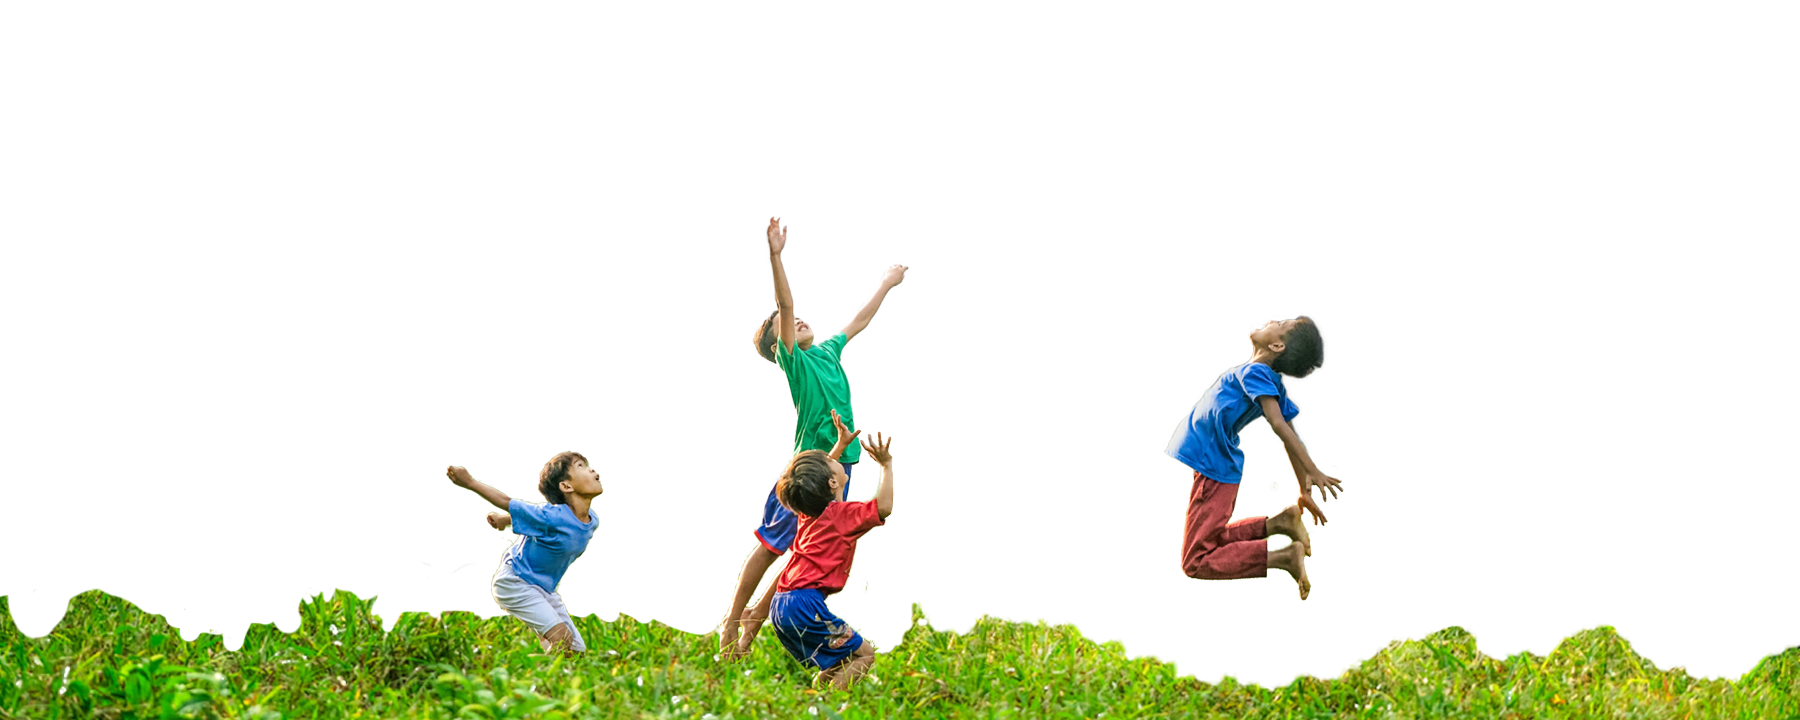 Four Boys Jumping in Grass at Dream Big Summer Day Camp | Hilltop Denver and Greenwood Village